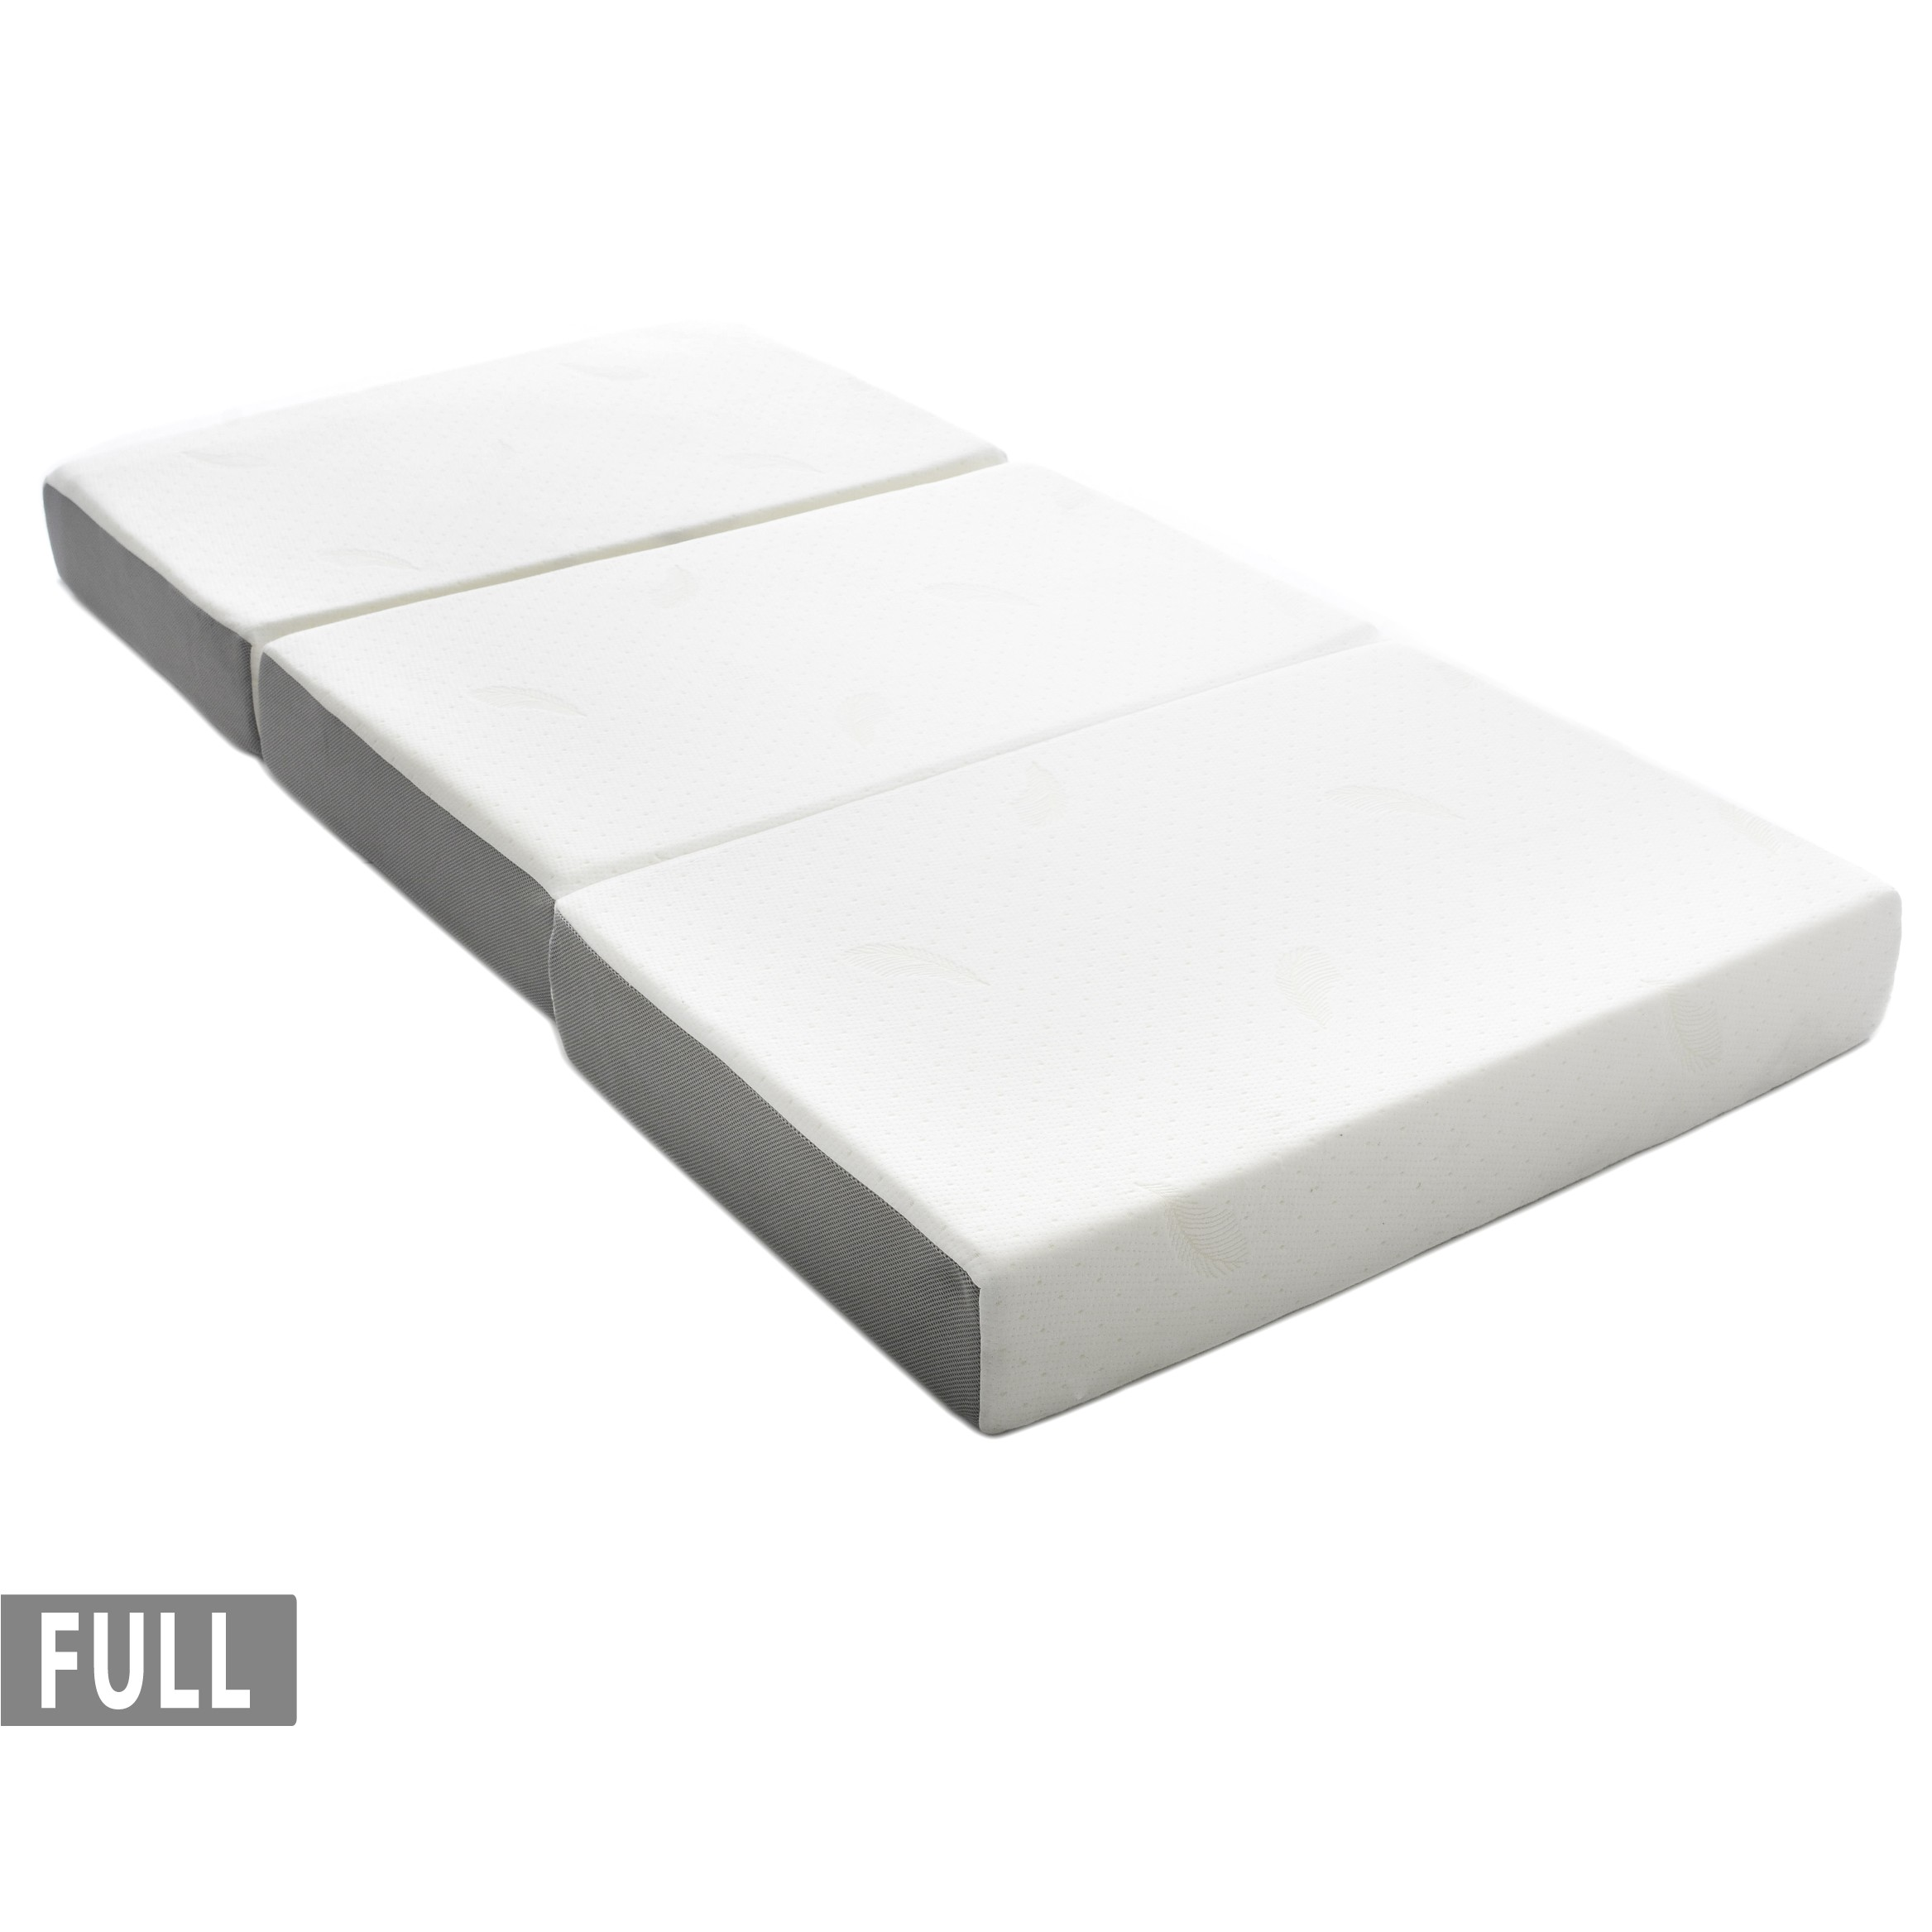 Milliard 6-inch Memory Foam Tri-fold Mattress Full 6 Memory Foam Tri Fold Mattress with Cover Full